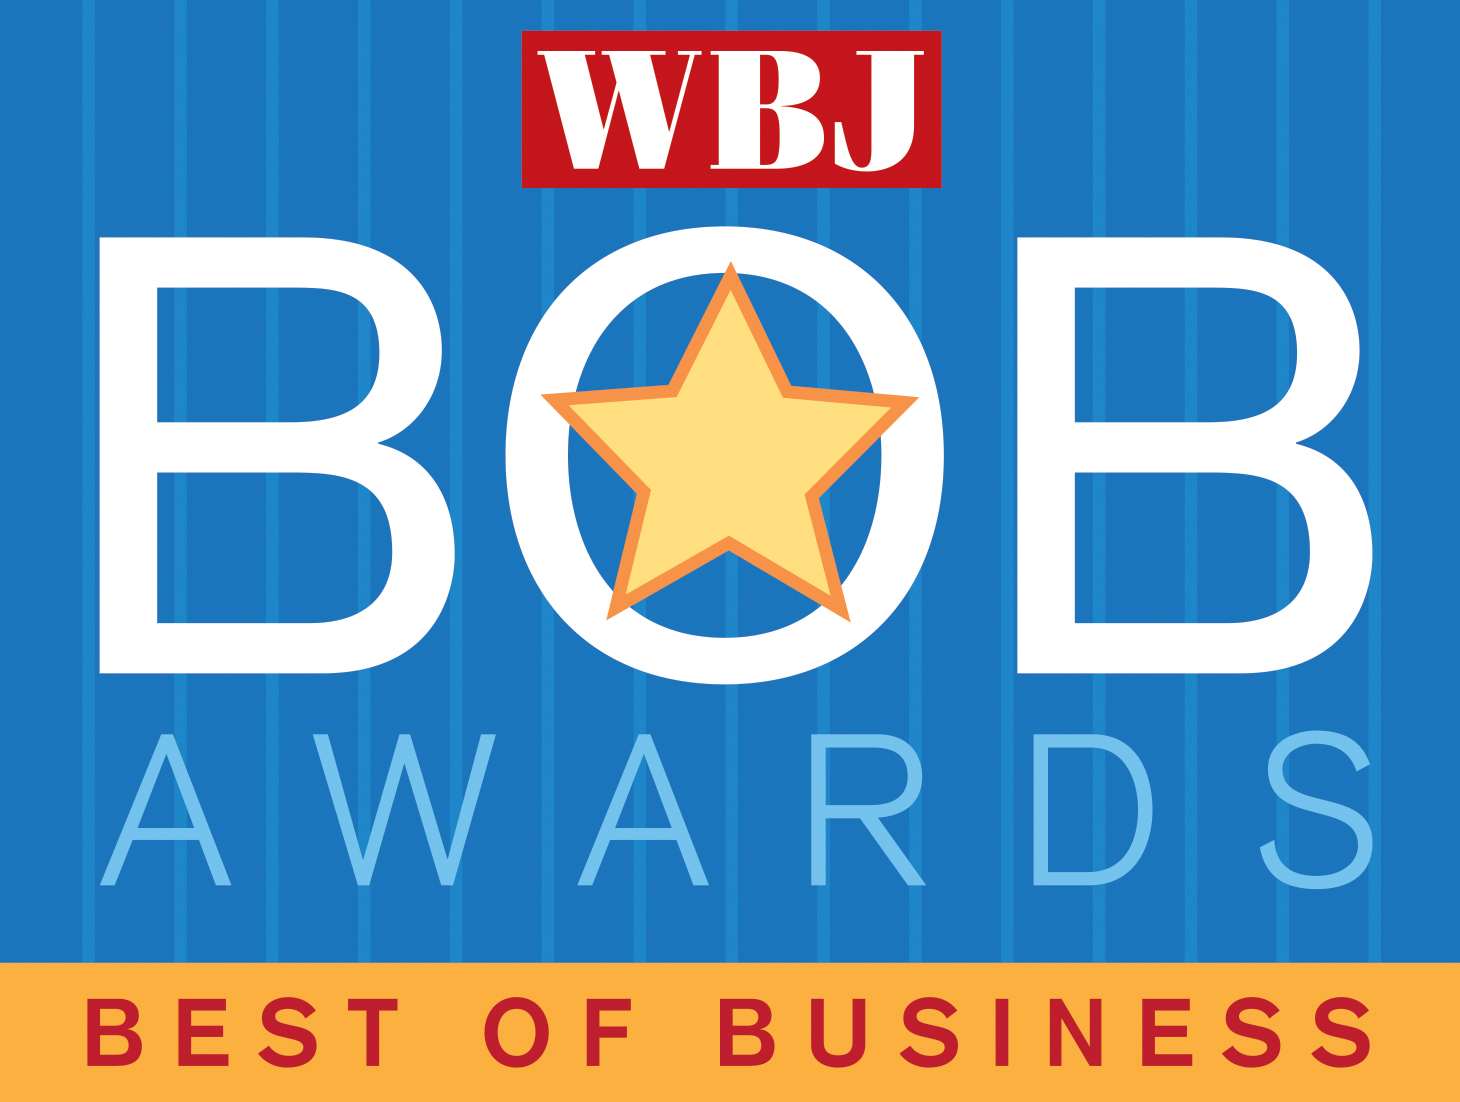 Worcester Business Journal Best of Business Awards